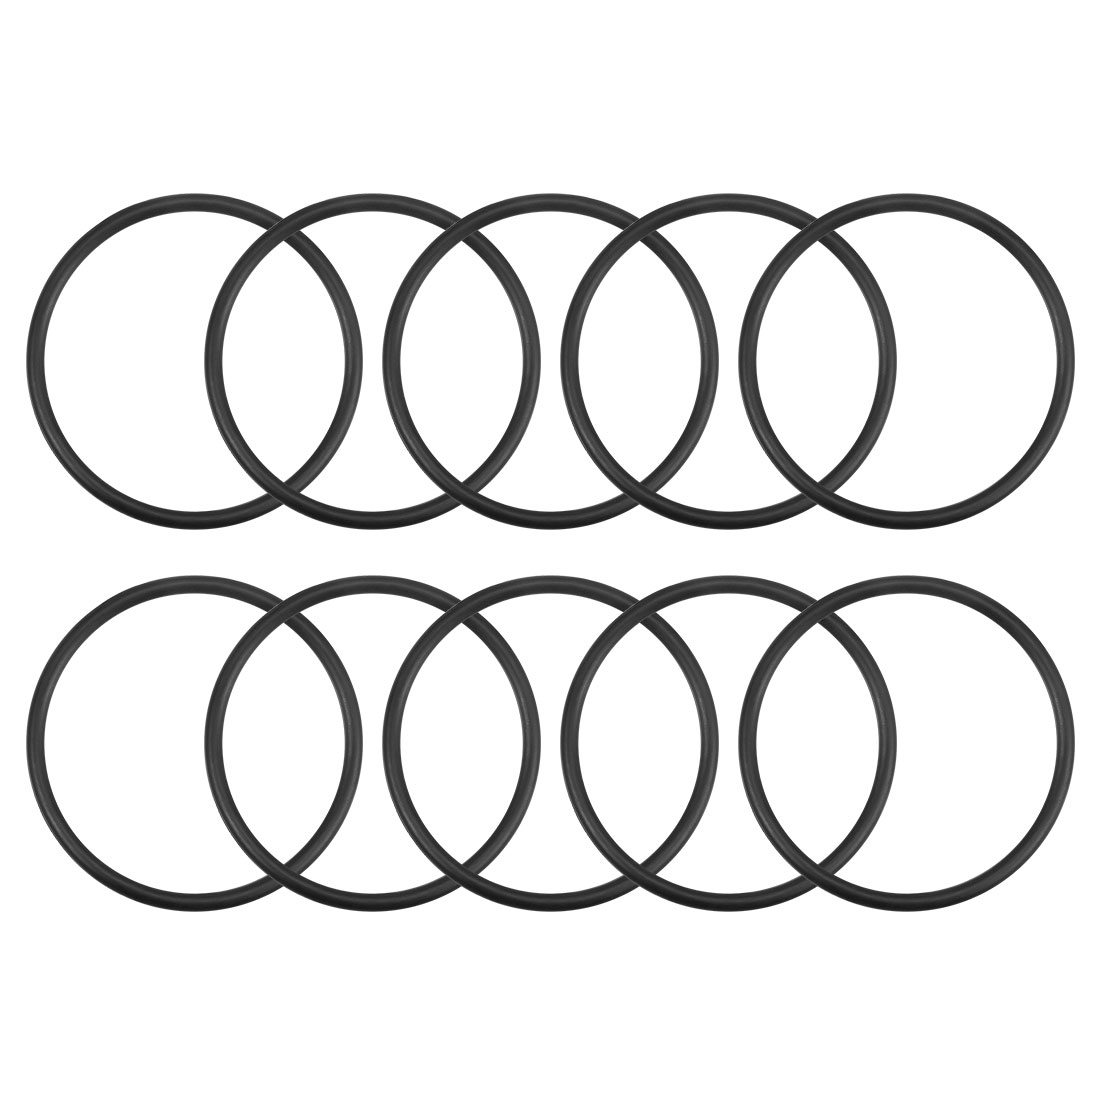 O-Rings Nitrile Rubber 60mm x 68mm x 4mm Round Seal Gasket 10Pcs